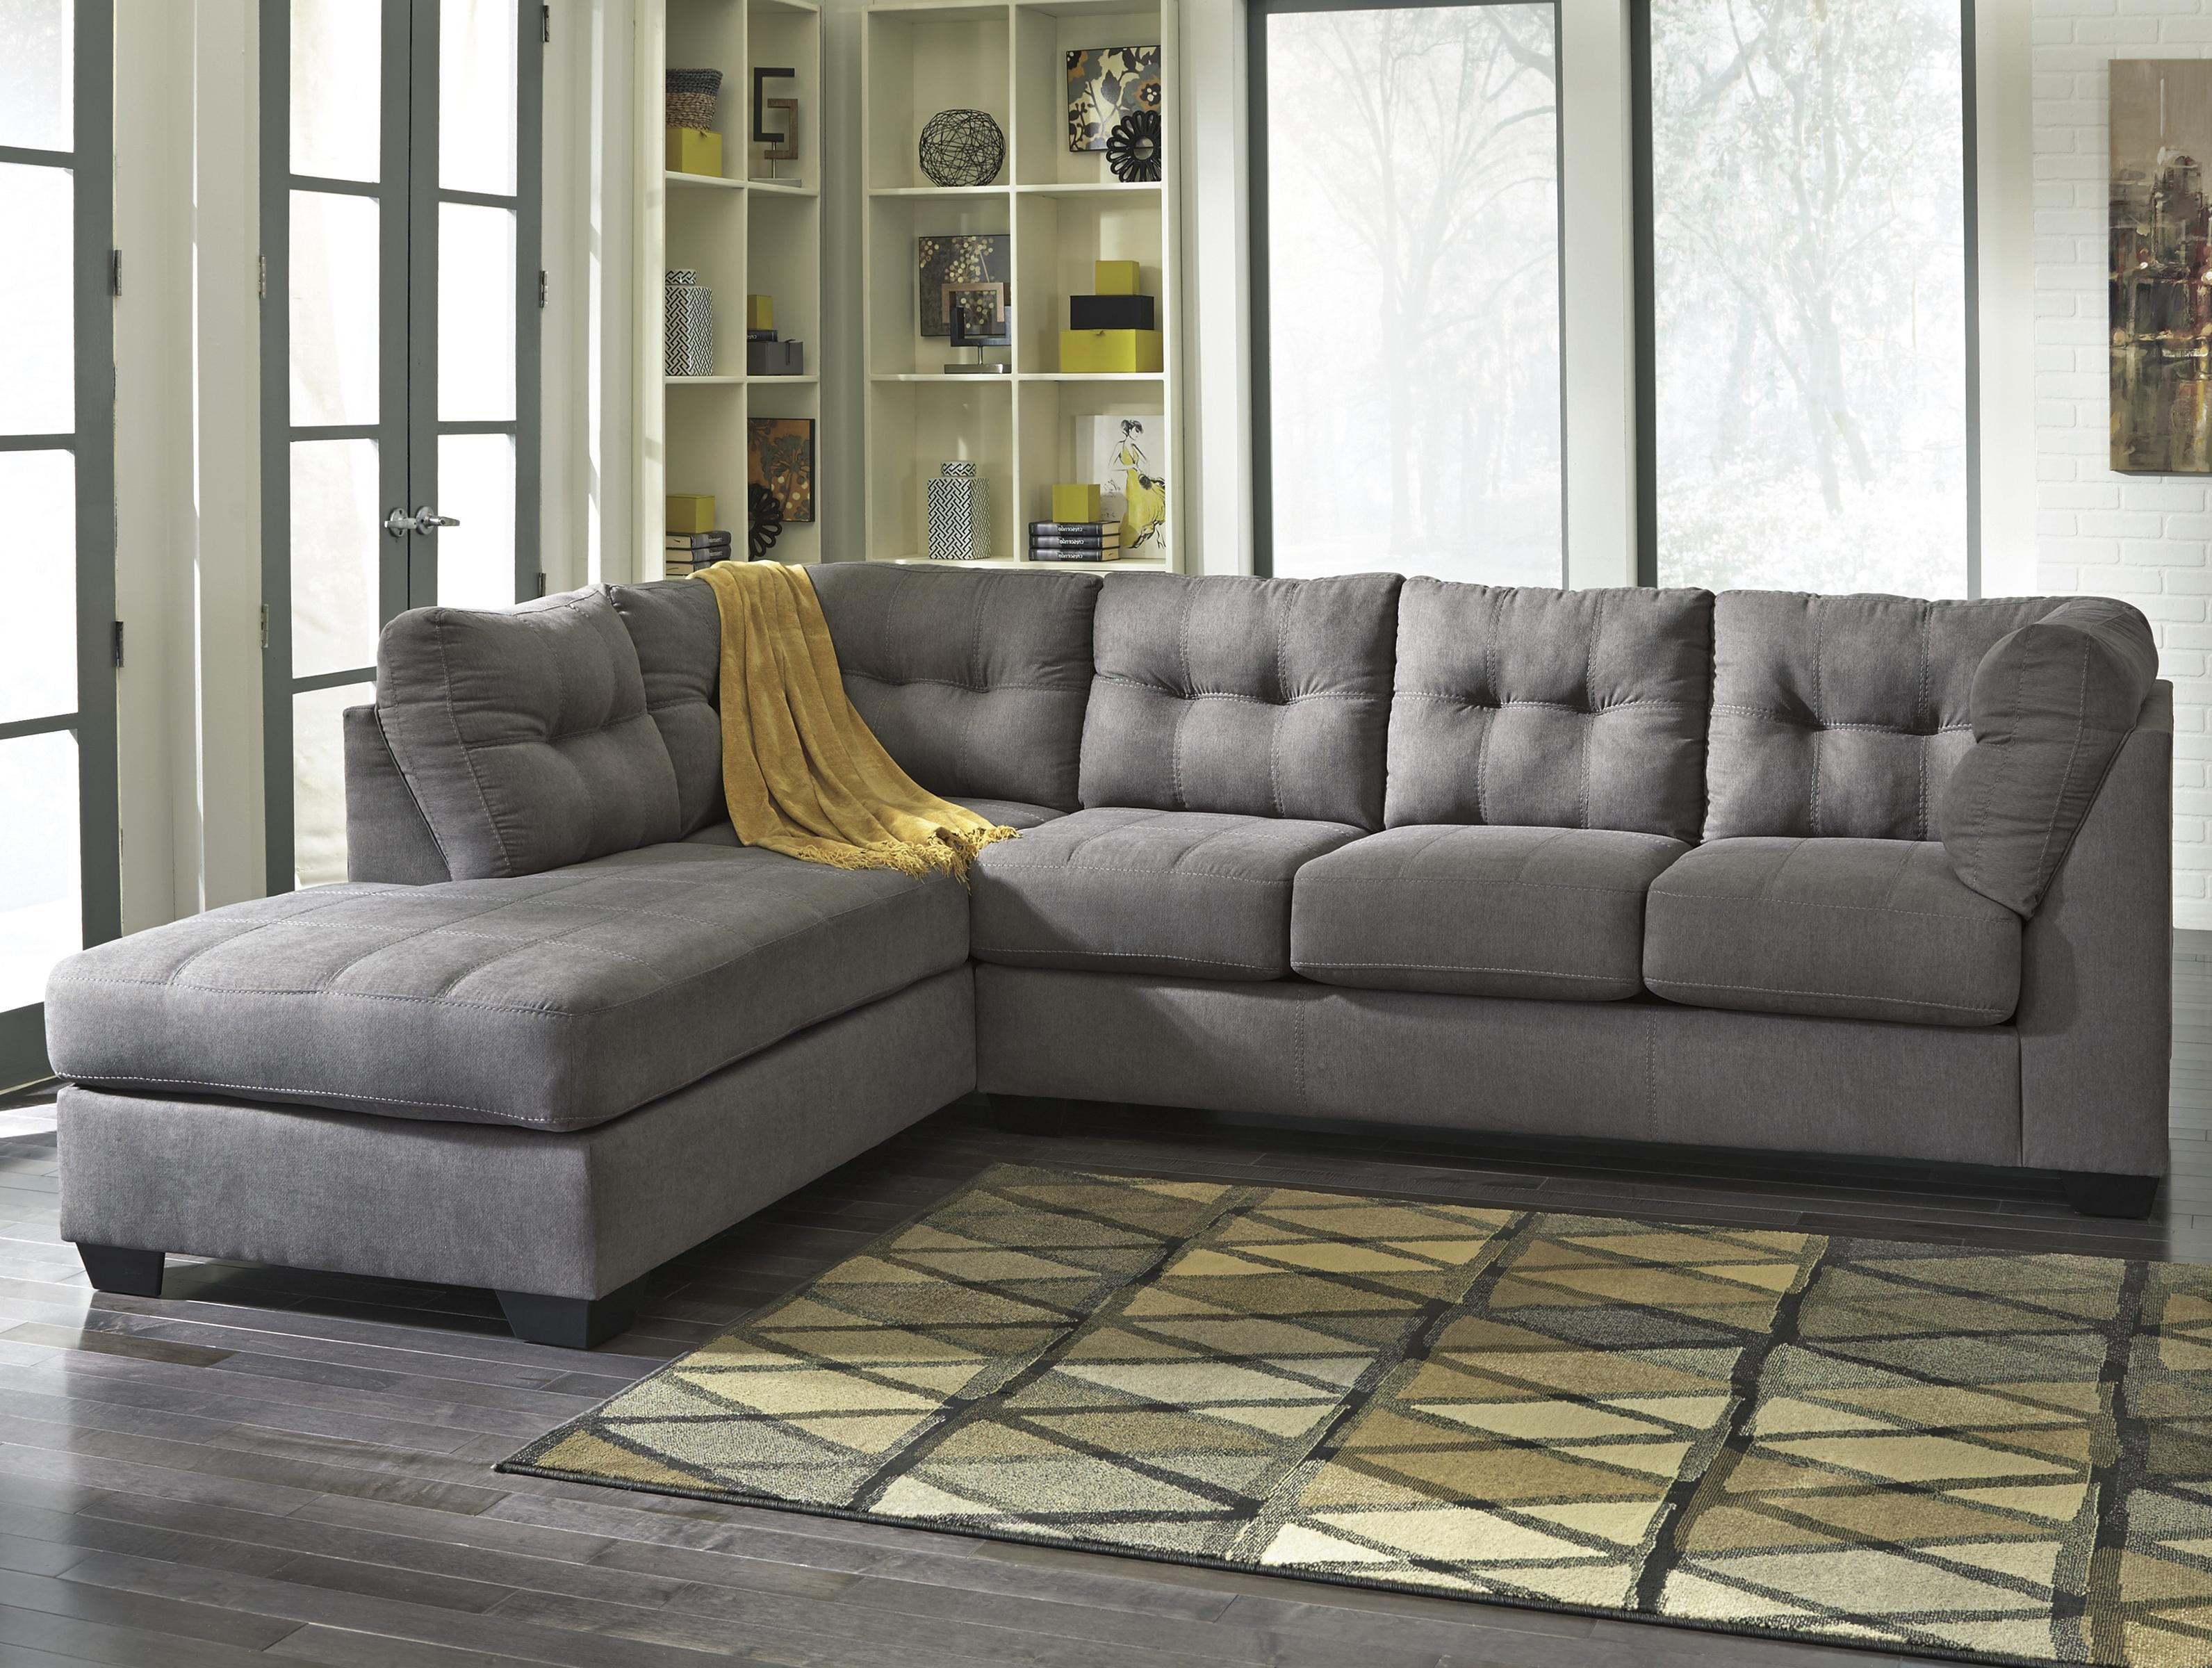 Benchcraft Maier – Charcoal 2 Piece Sectional With Left Chaise With Sectional Sofa With 2 Chaises (View 4 of 20)